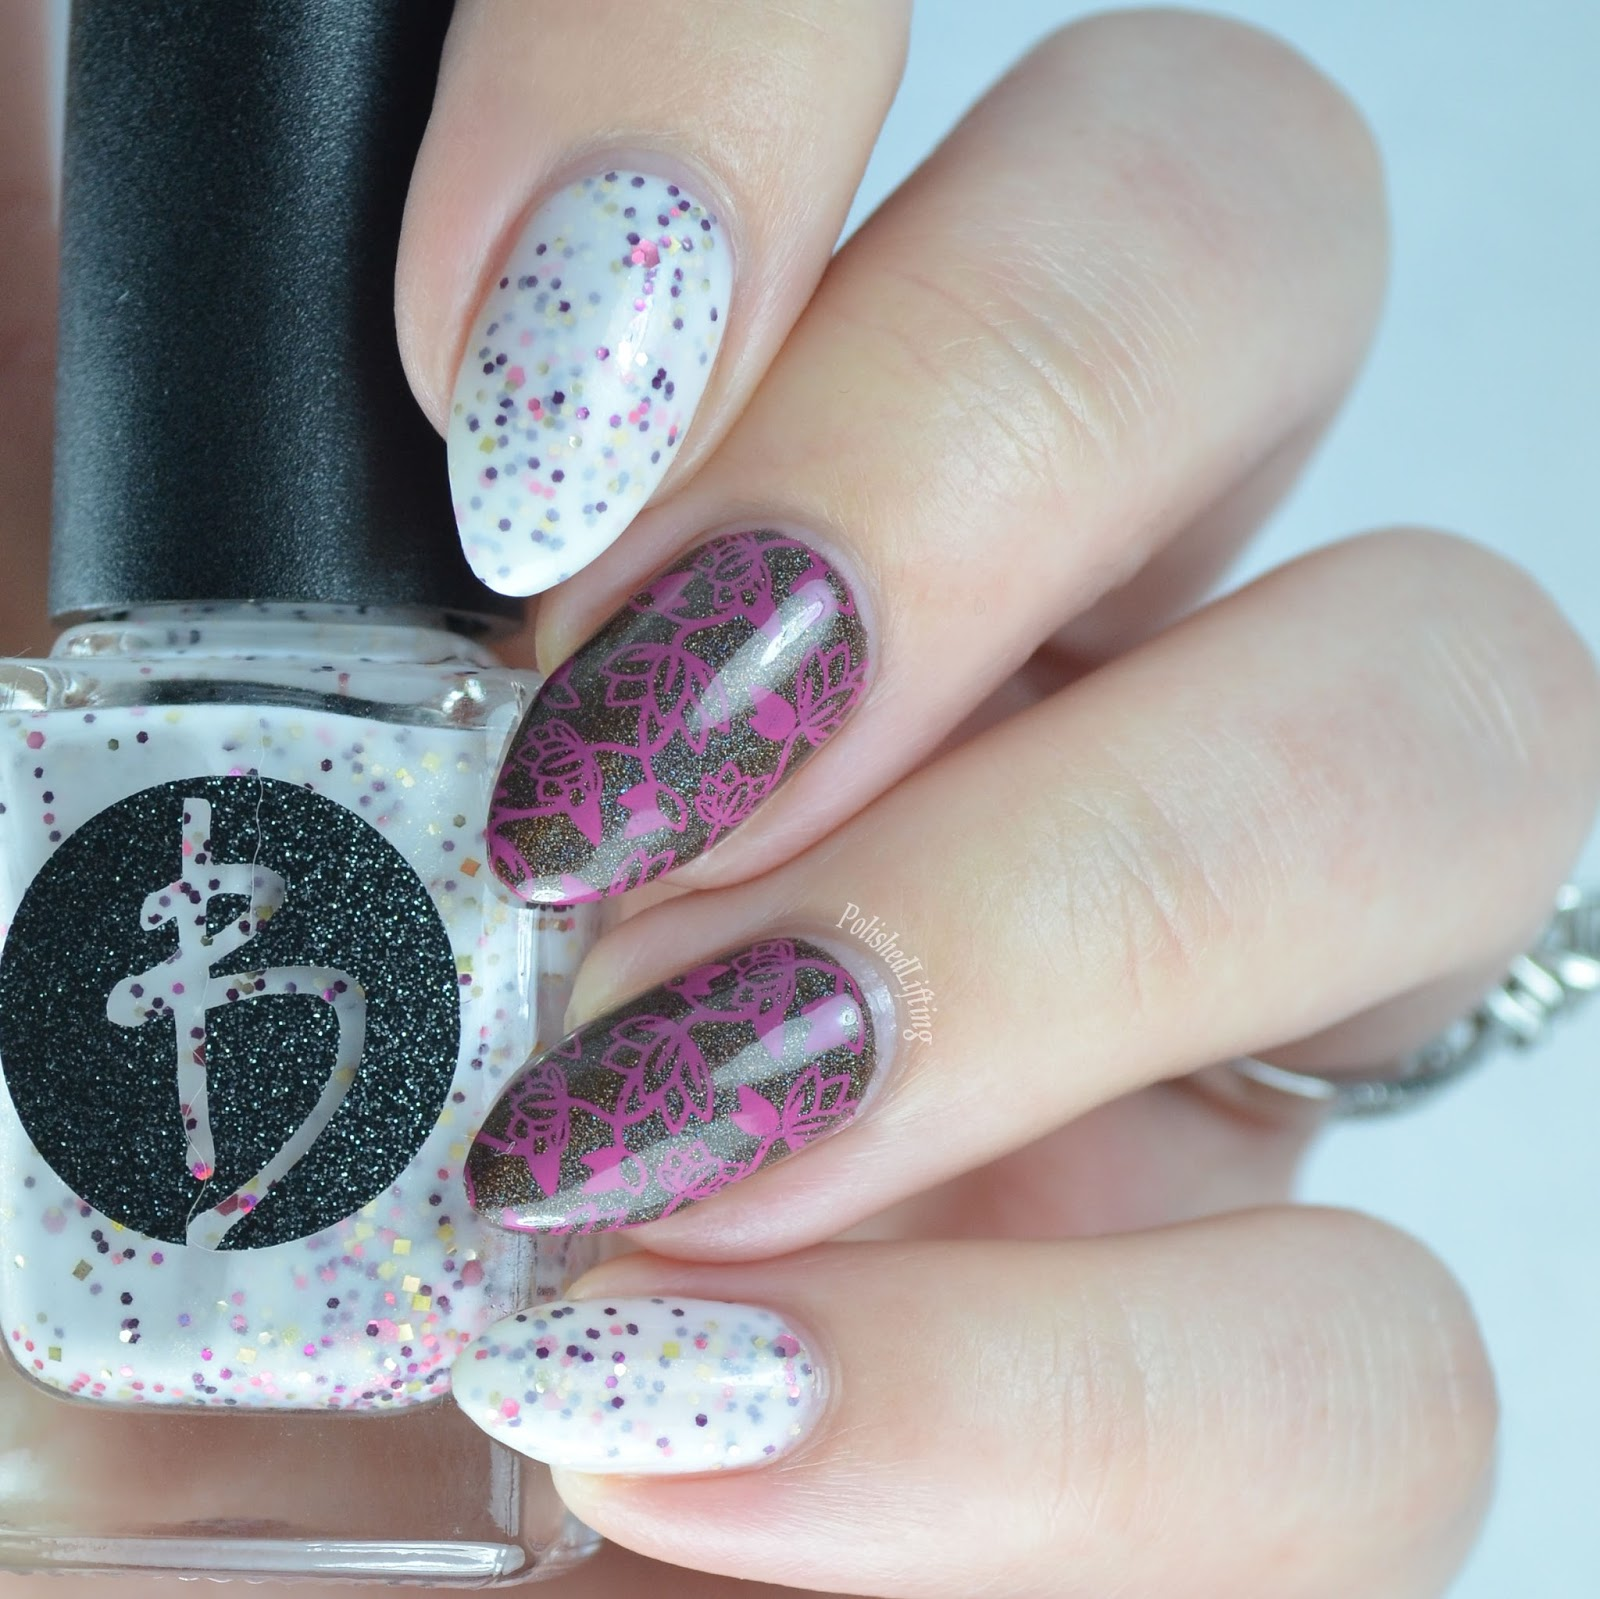 Polished lifting lotus flower mani featuring bliss polish and white crelly polish with chocolate holographic accent and lotus flower stamping dhlflorist Image collections